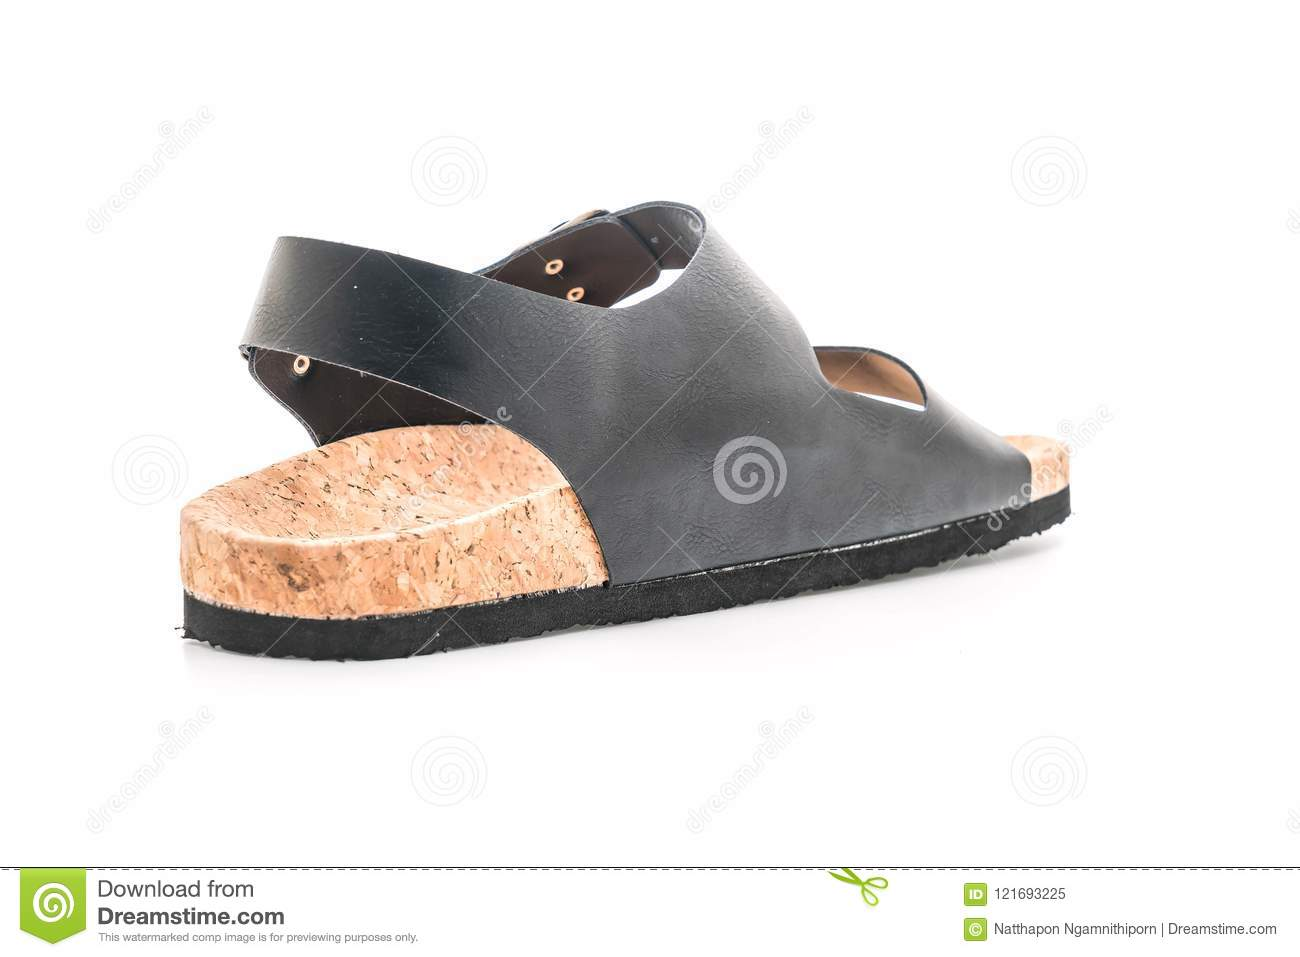 456f1e42e1dc Men s Leather Sandals On White Background Stock Image - Image of ...